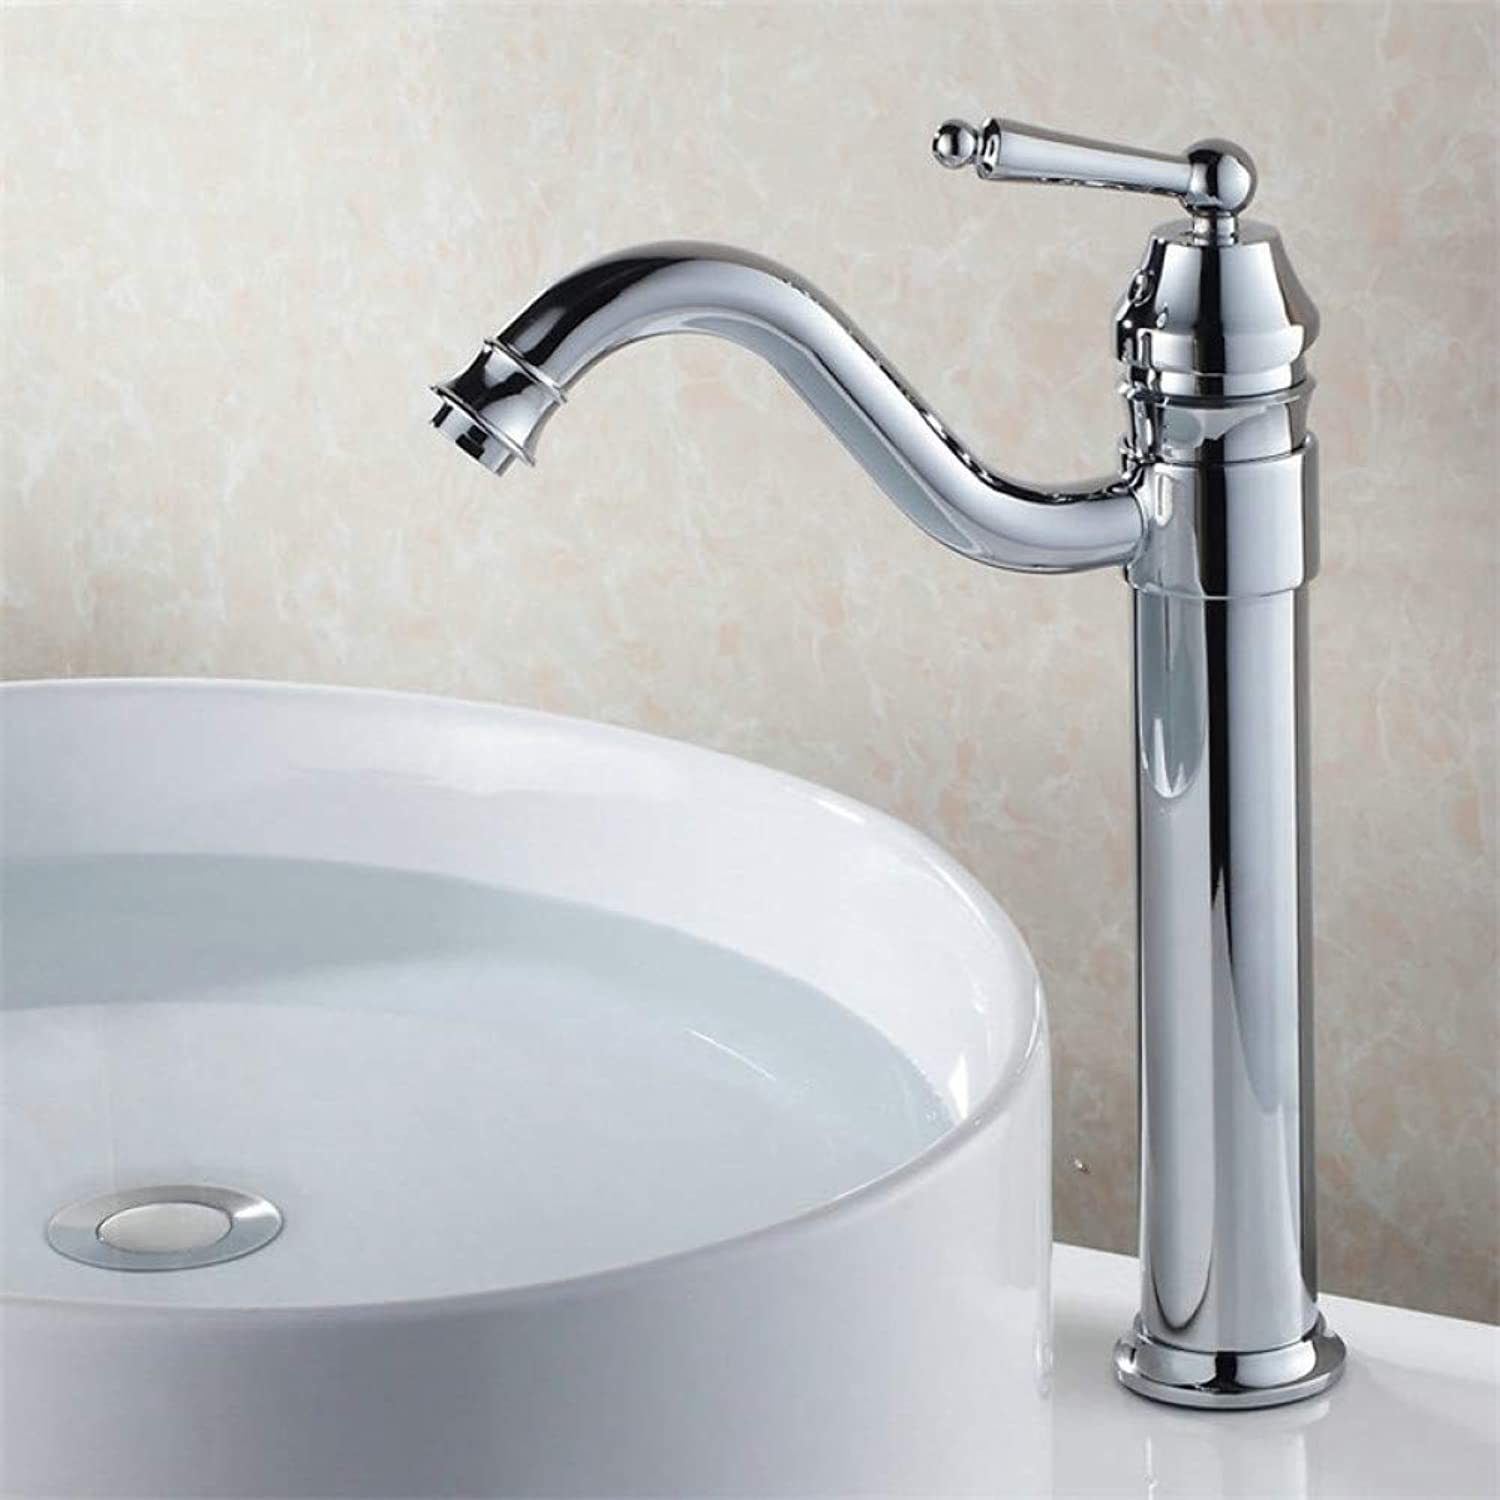 ZHFJGKR&ZL Single Hole Deck Mounted Ceramic Plate Spool Brass Thin Tall Basin Bathroom Faucet